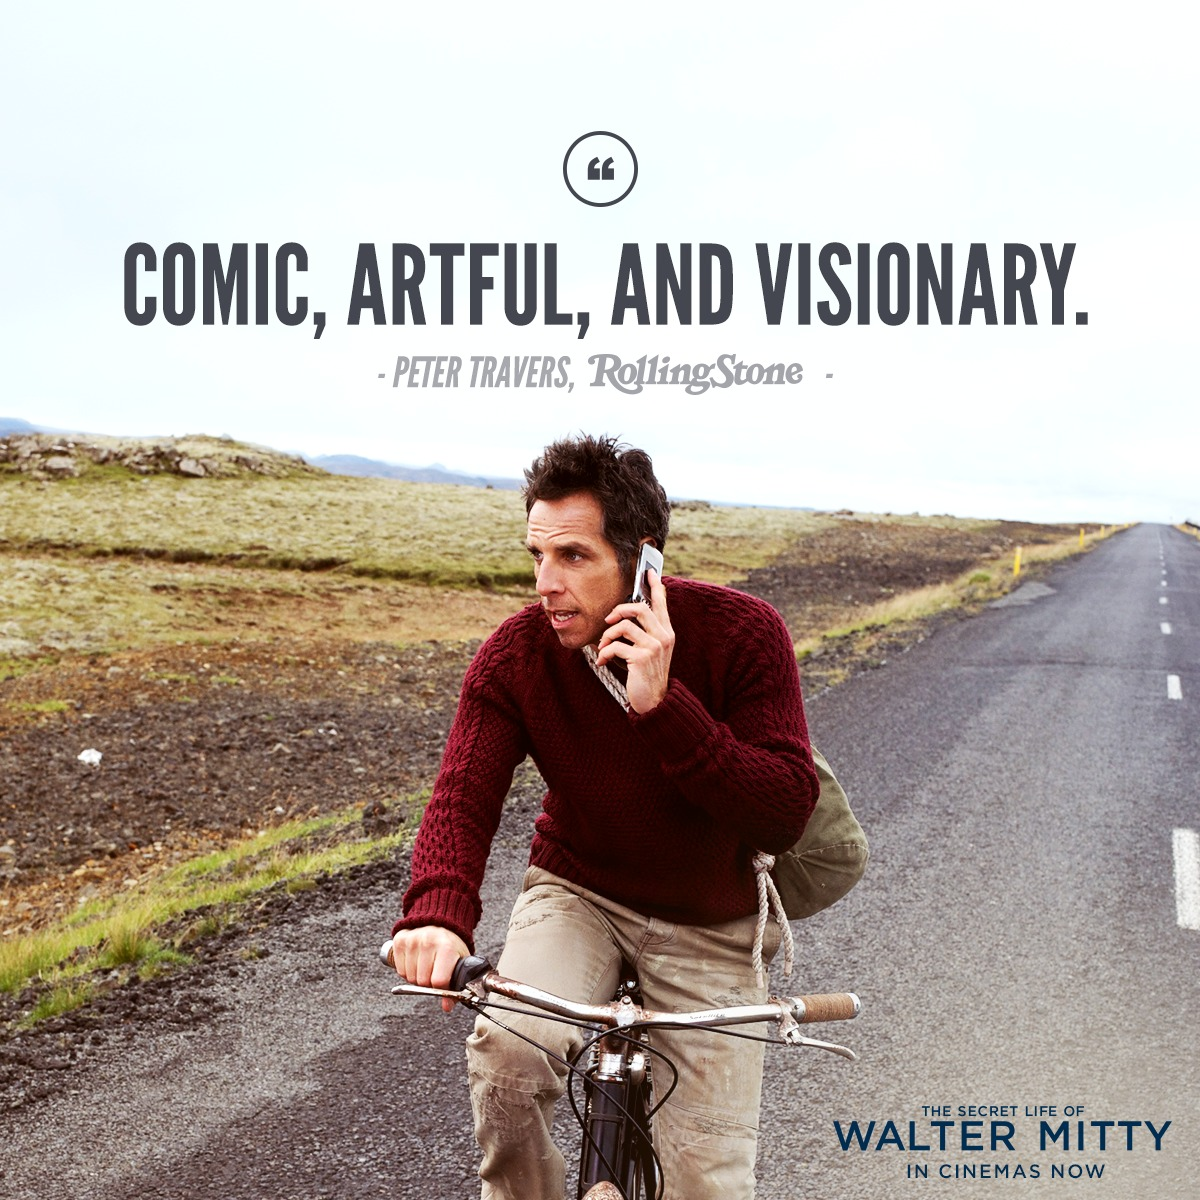 The secret life of walter mitty quotes tumblr